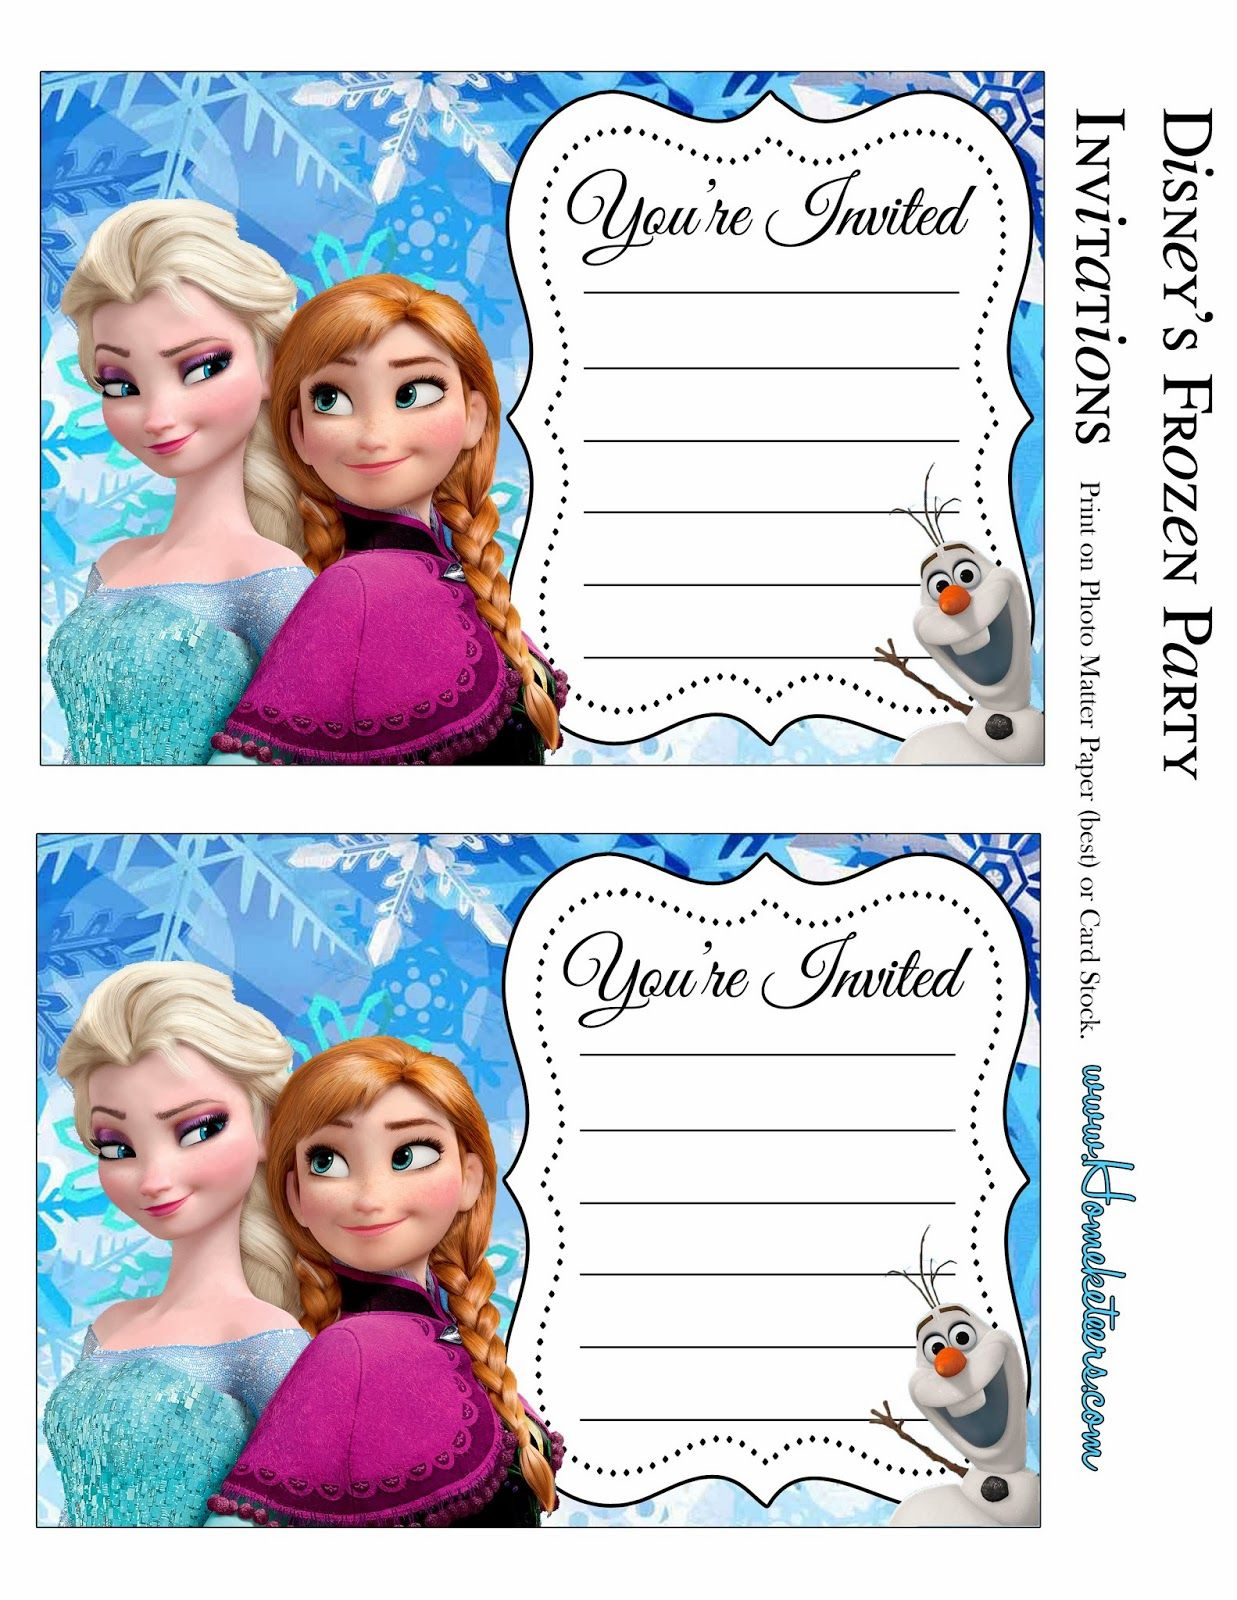 It's just a photo of Revered Free Printable Frozen Invitation Templates